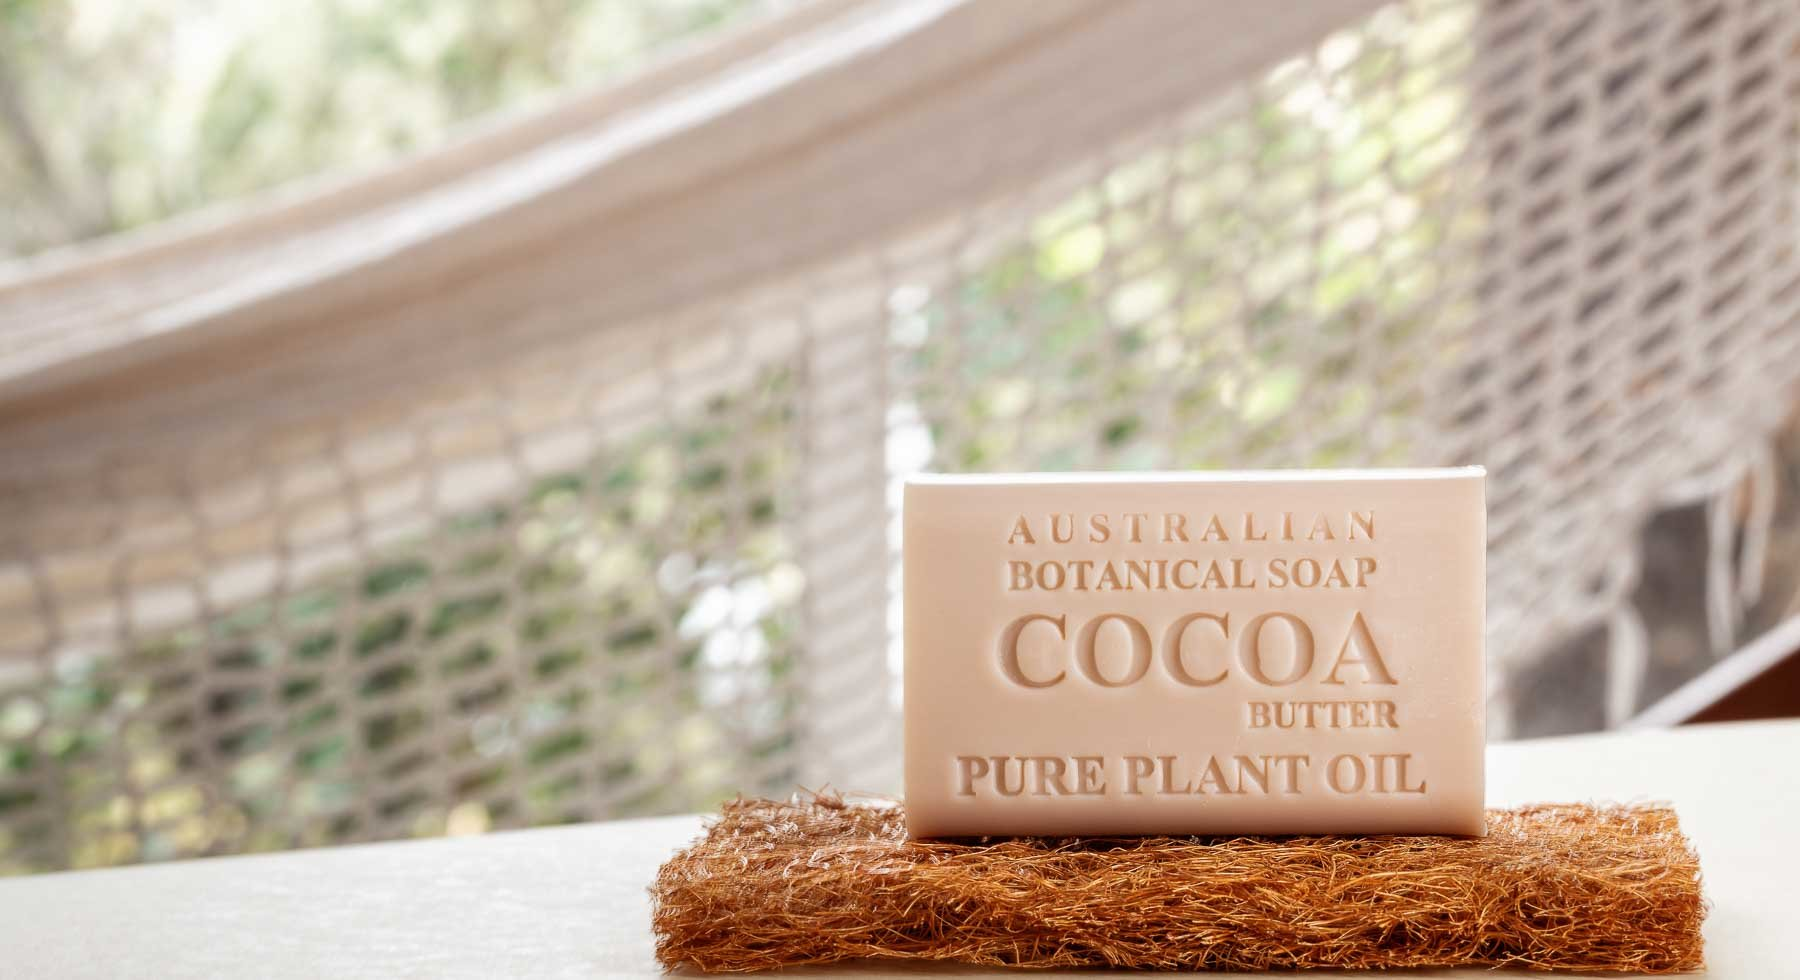 Australian Botanic Soap Cocoa soap on natural fibre base